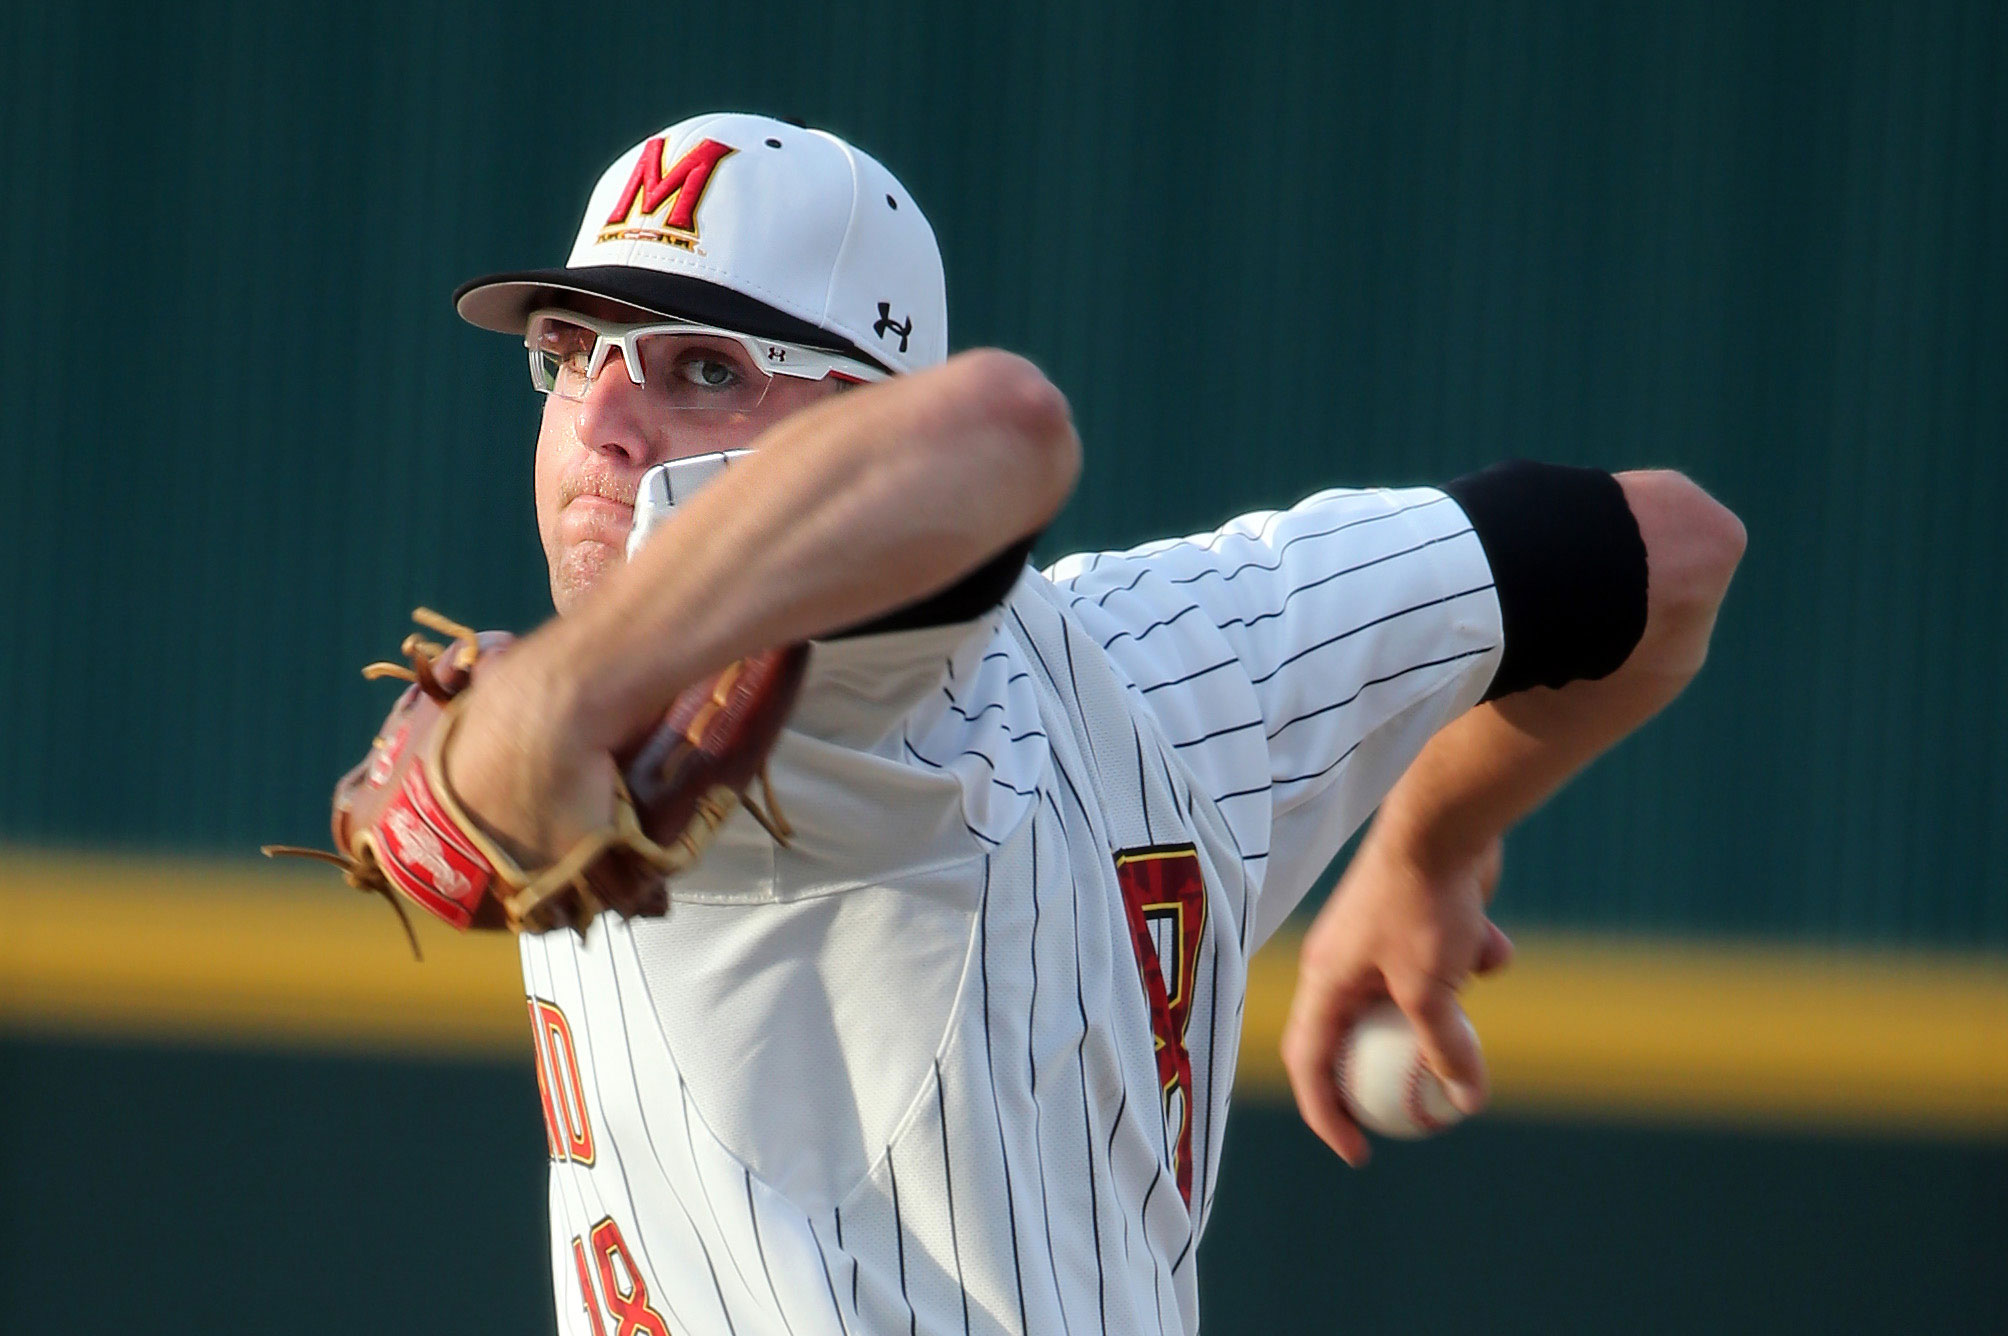 Terps hope to ride Shawaryn to first College World Series